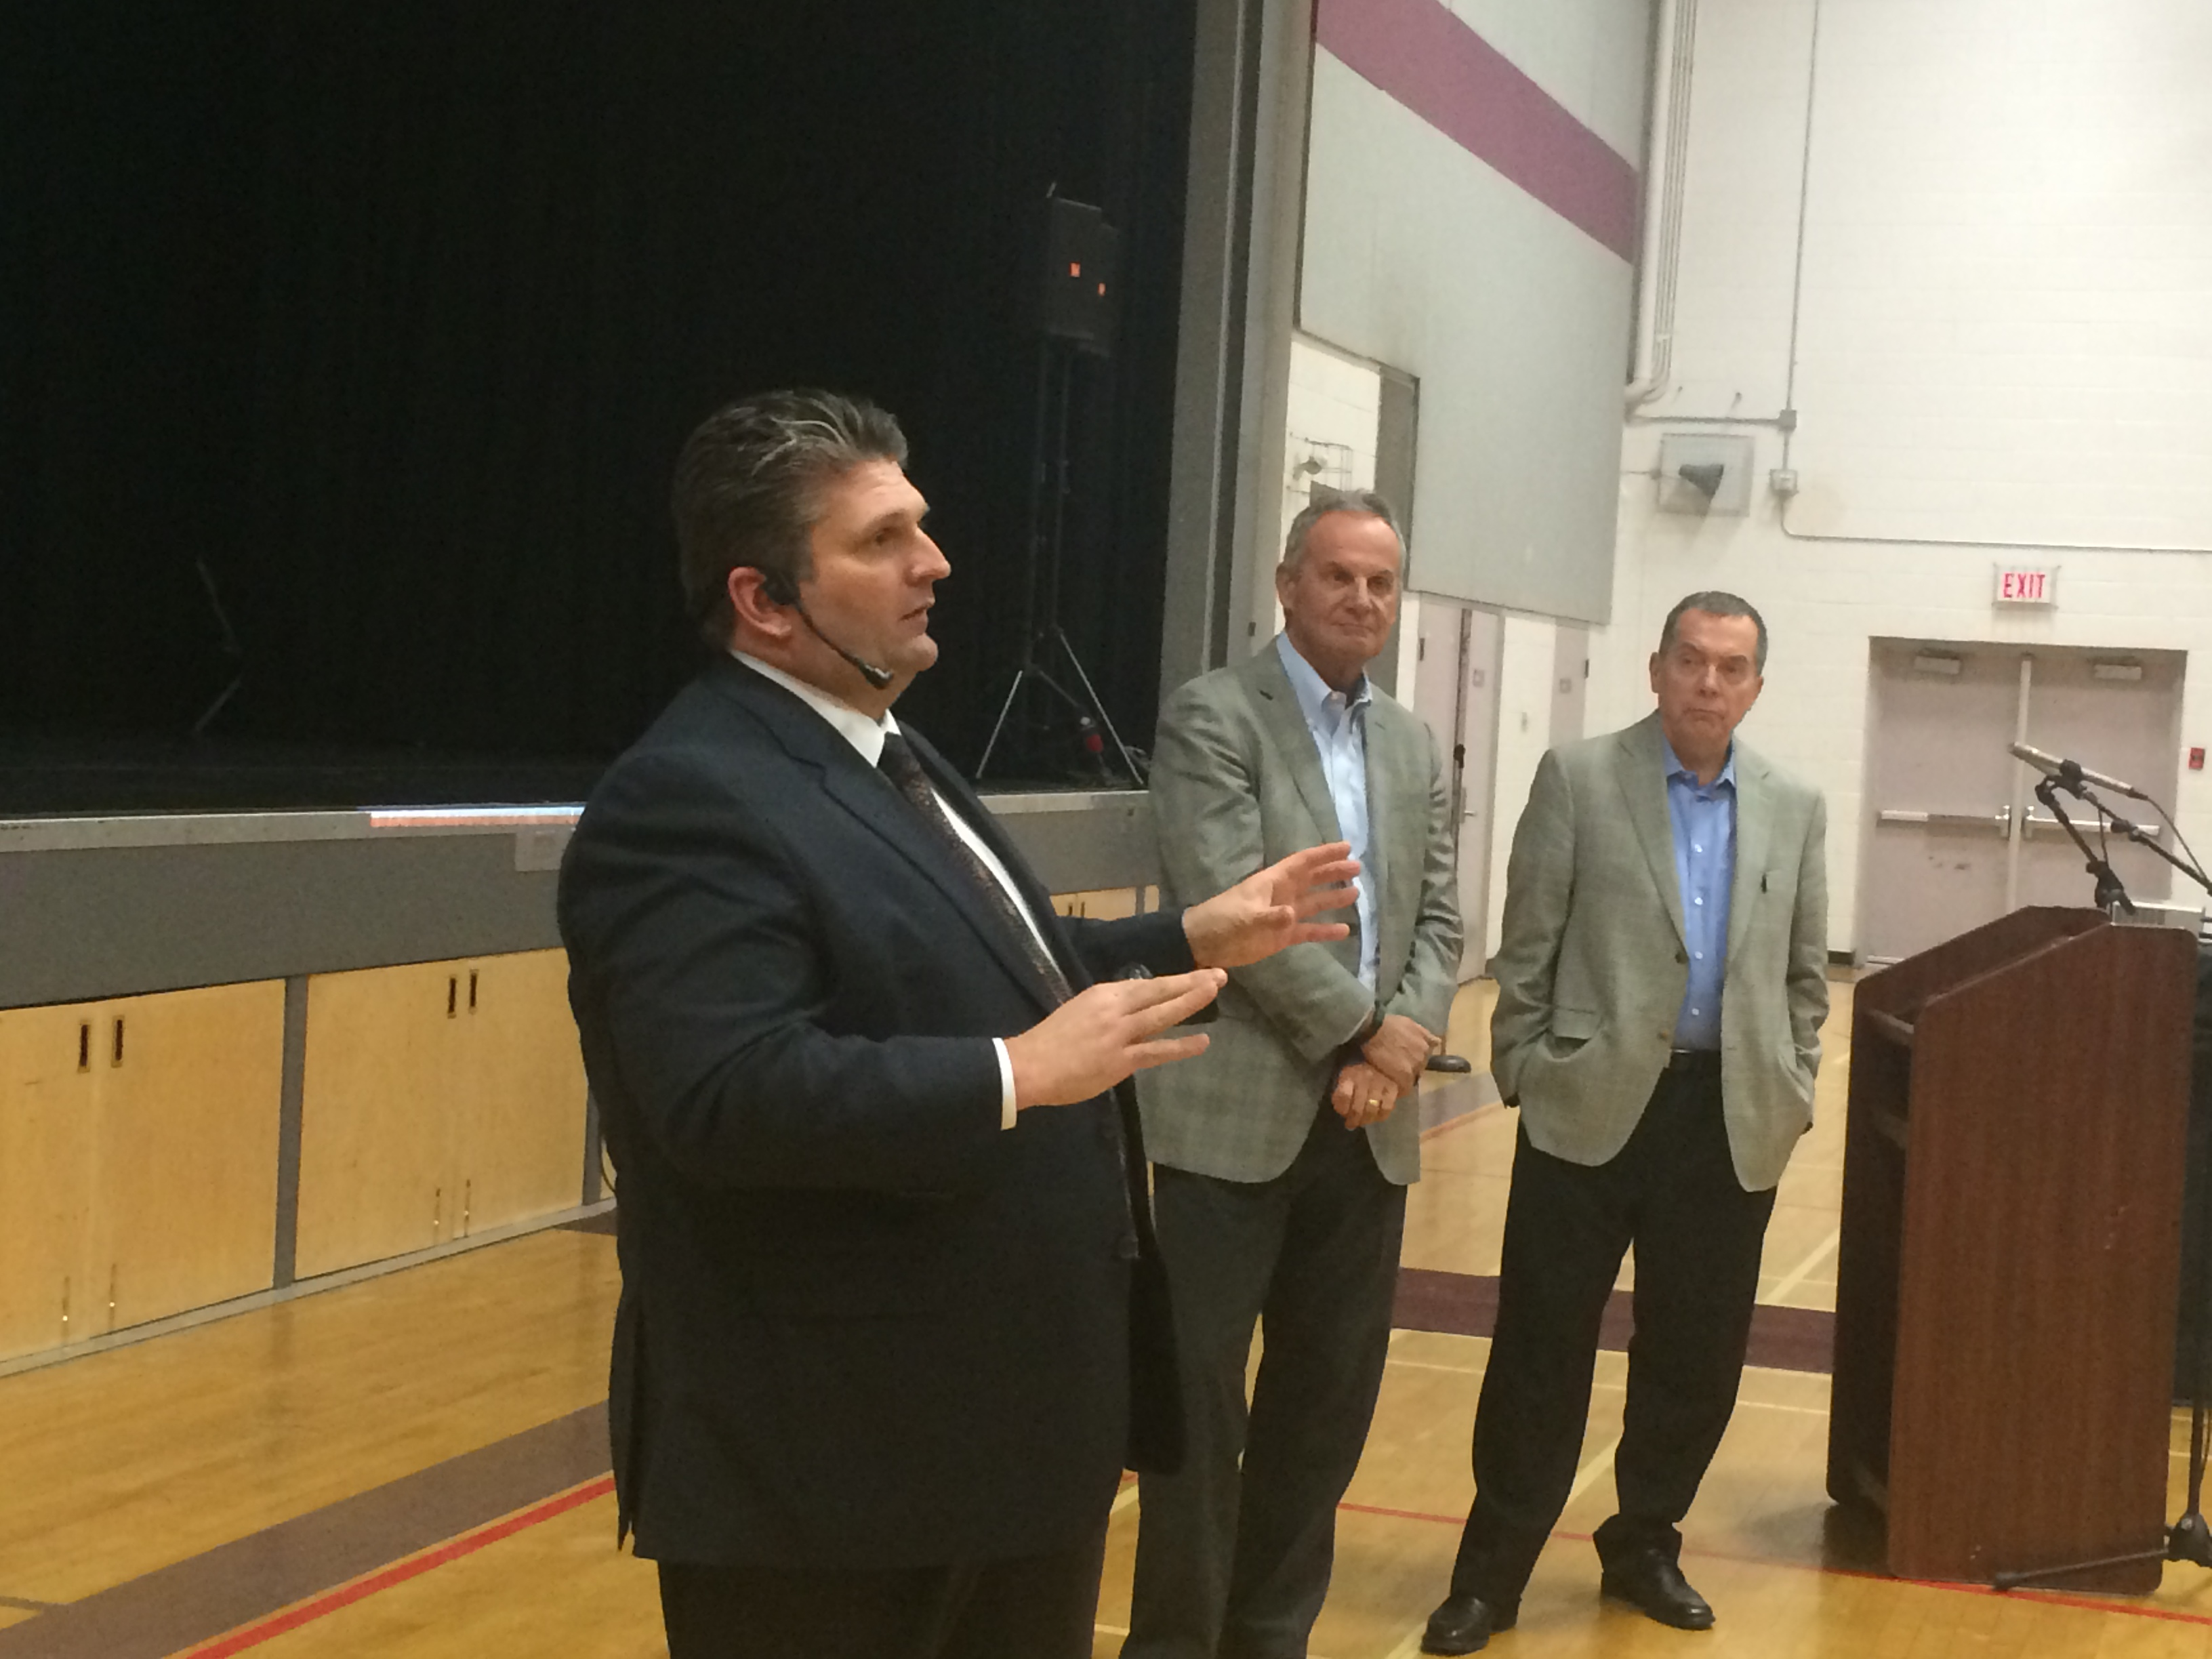 David Musyj (L), Gary Switzer (C) and Dave Cooke (R) host an information meeting on a new mega-hospital for WIndsor-Essex at Migration Hall in Kingsville on February 10, 2015. (Photo by Ricardo Veneza)